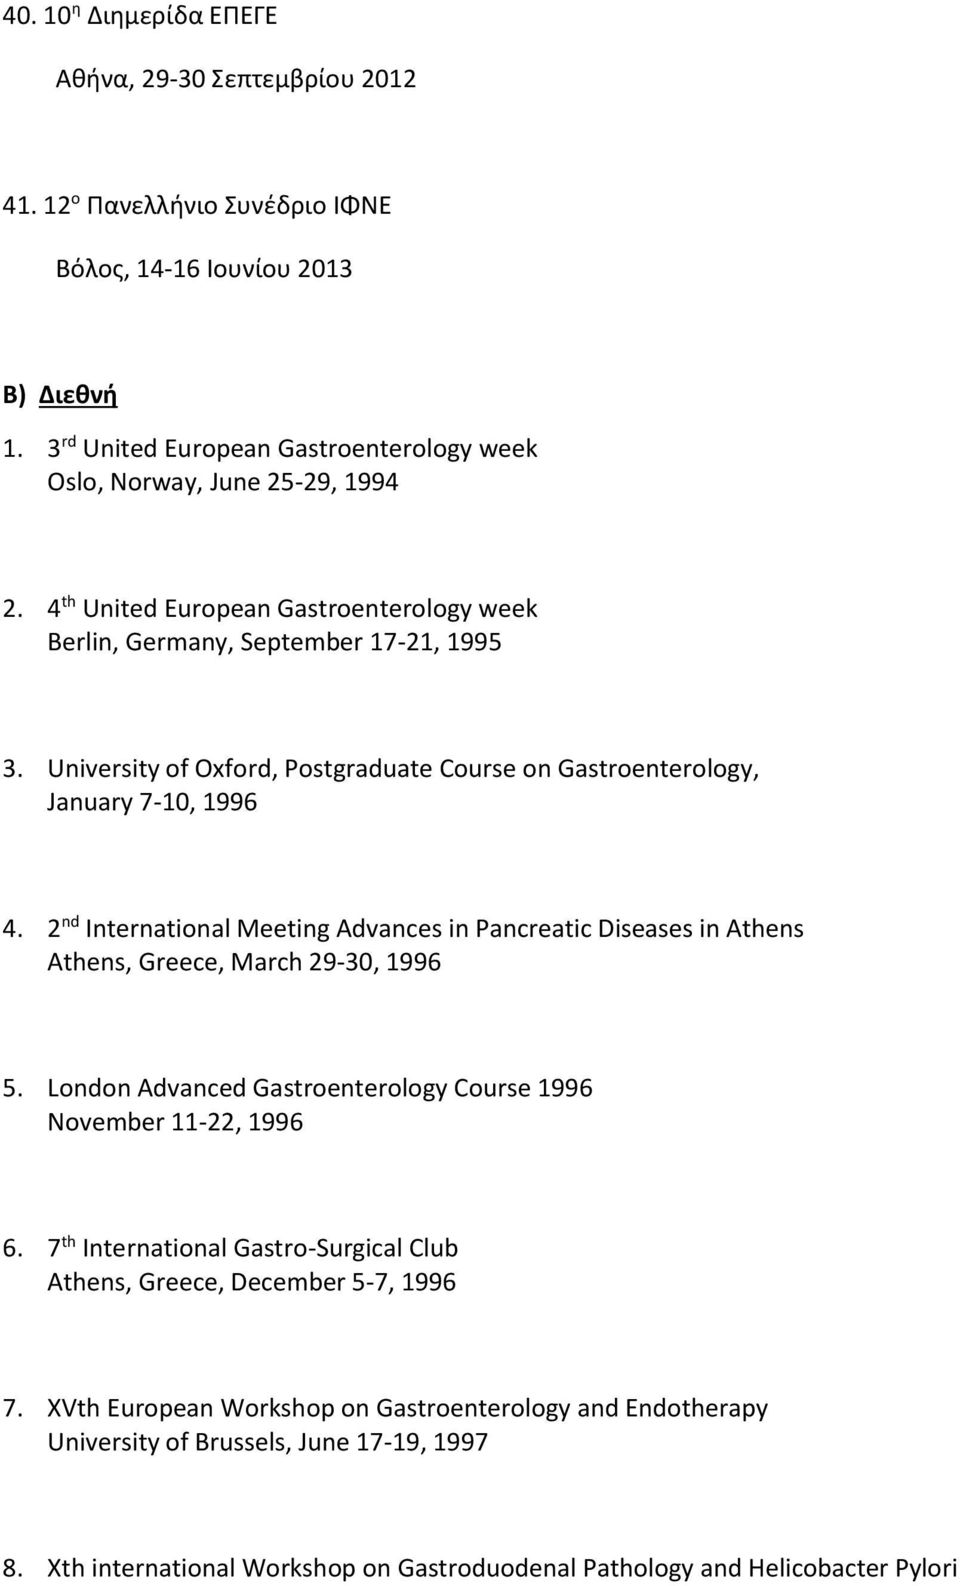 University of Oxford, Postgraduate Course on Gastroenterology, January 7-10, 1996 4. 2 nd International Meeting Advances in Pancreatic Diseases in Athens Athens, Greece, March 29-30, 1996 5.